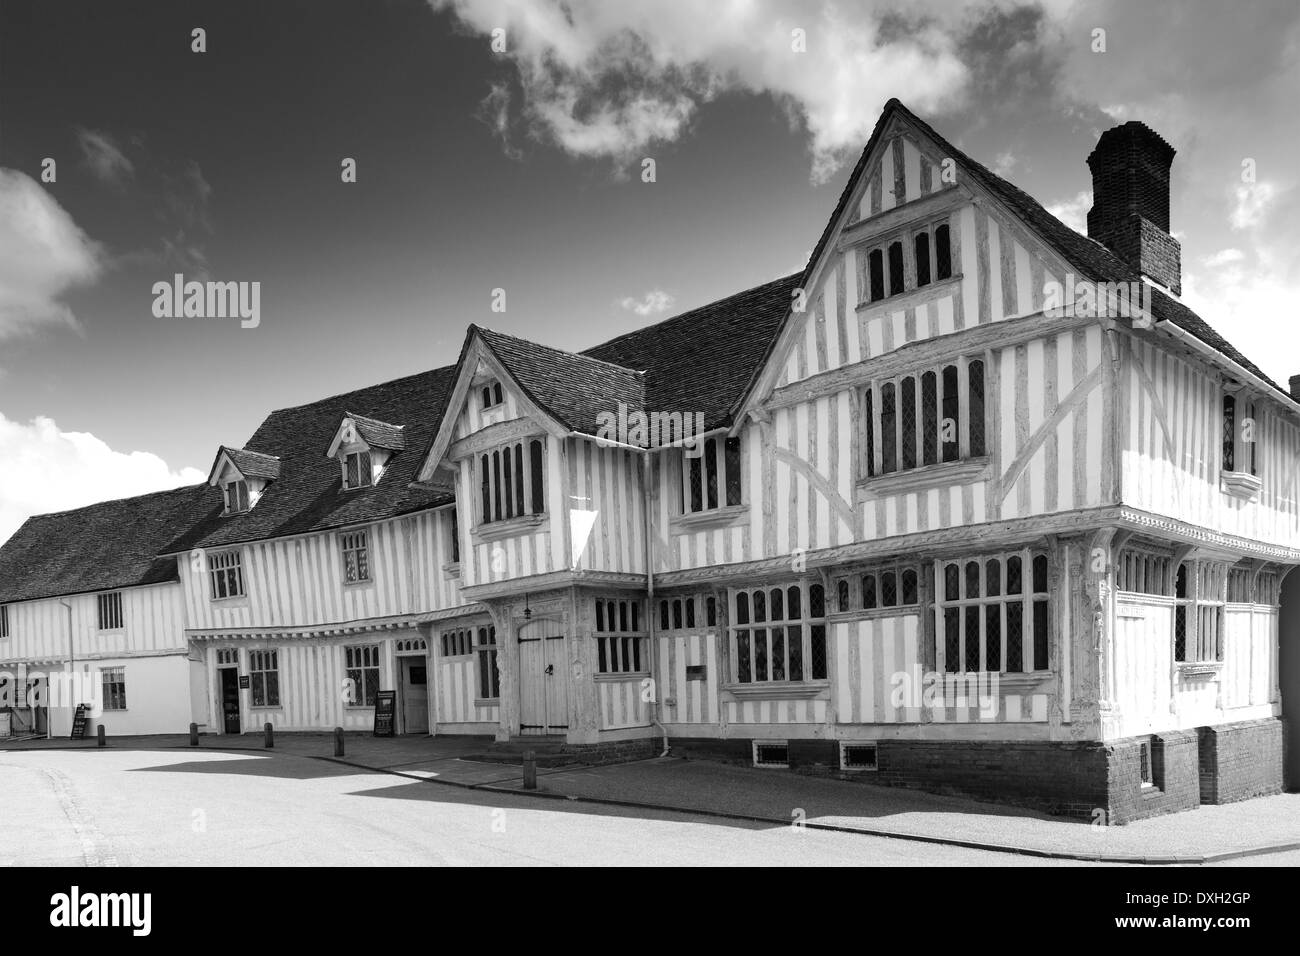 The Corpus Christi Guildhall, Market square, Lavenham village, Suffolk County, England, Britain. Built in the 16th century. - Stock Image